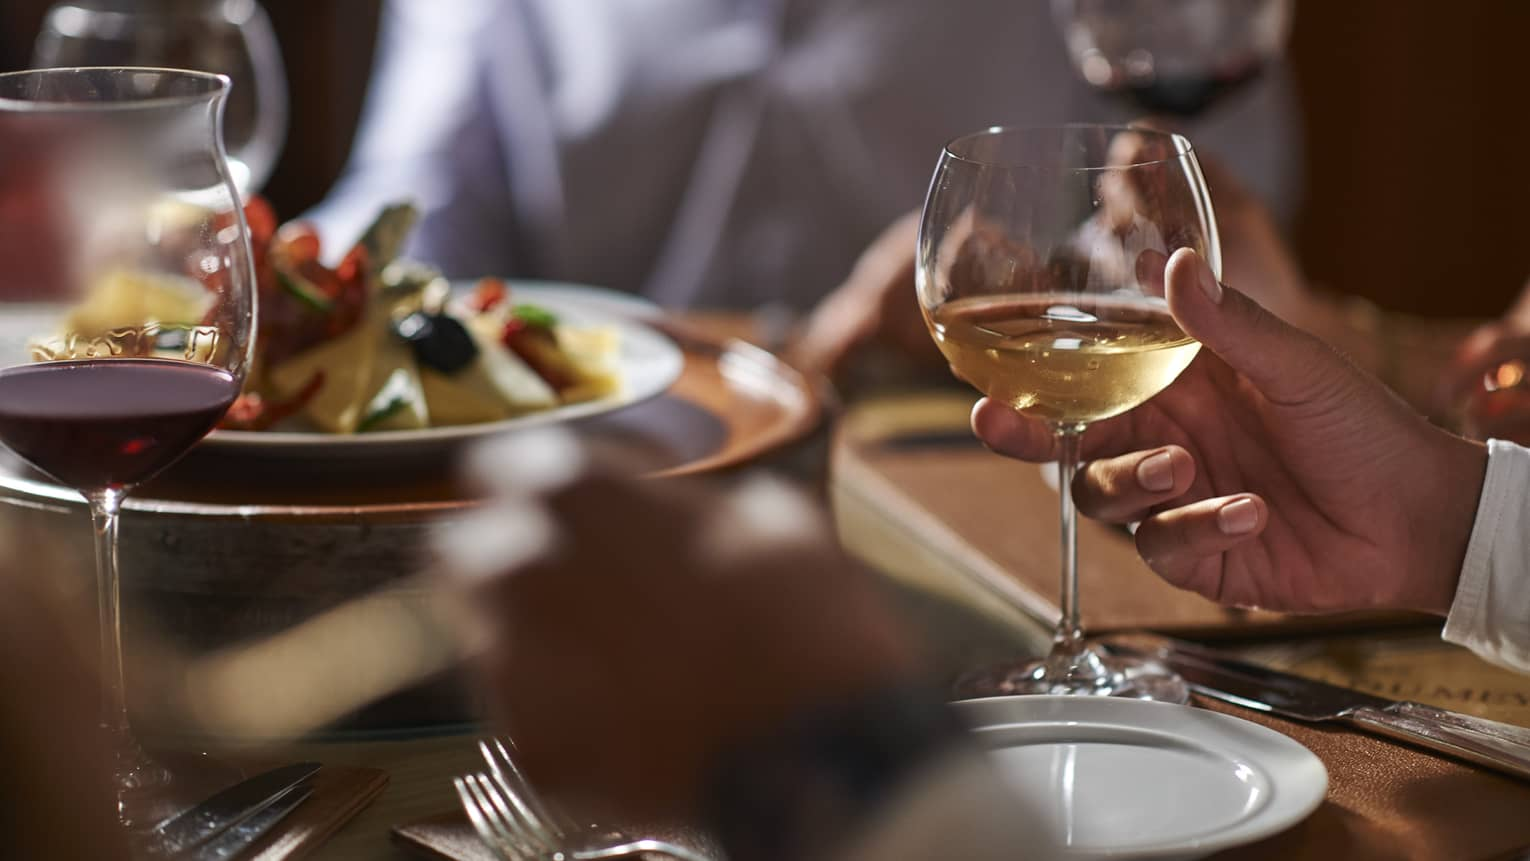 Close-up of hand holding wine glass by dinner plate on table